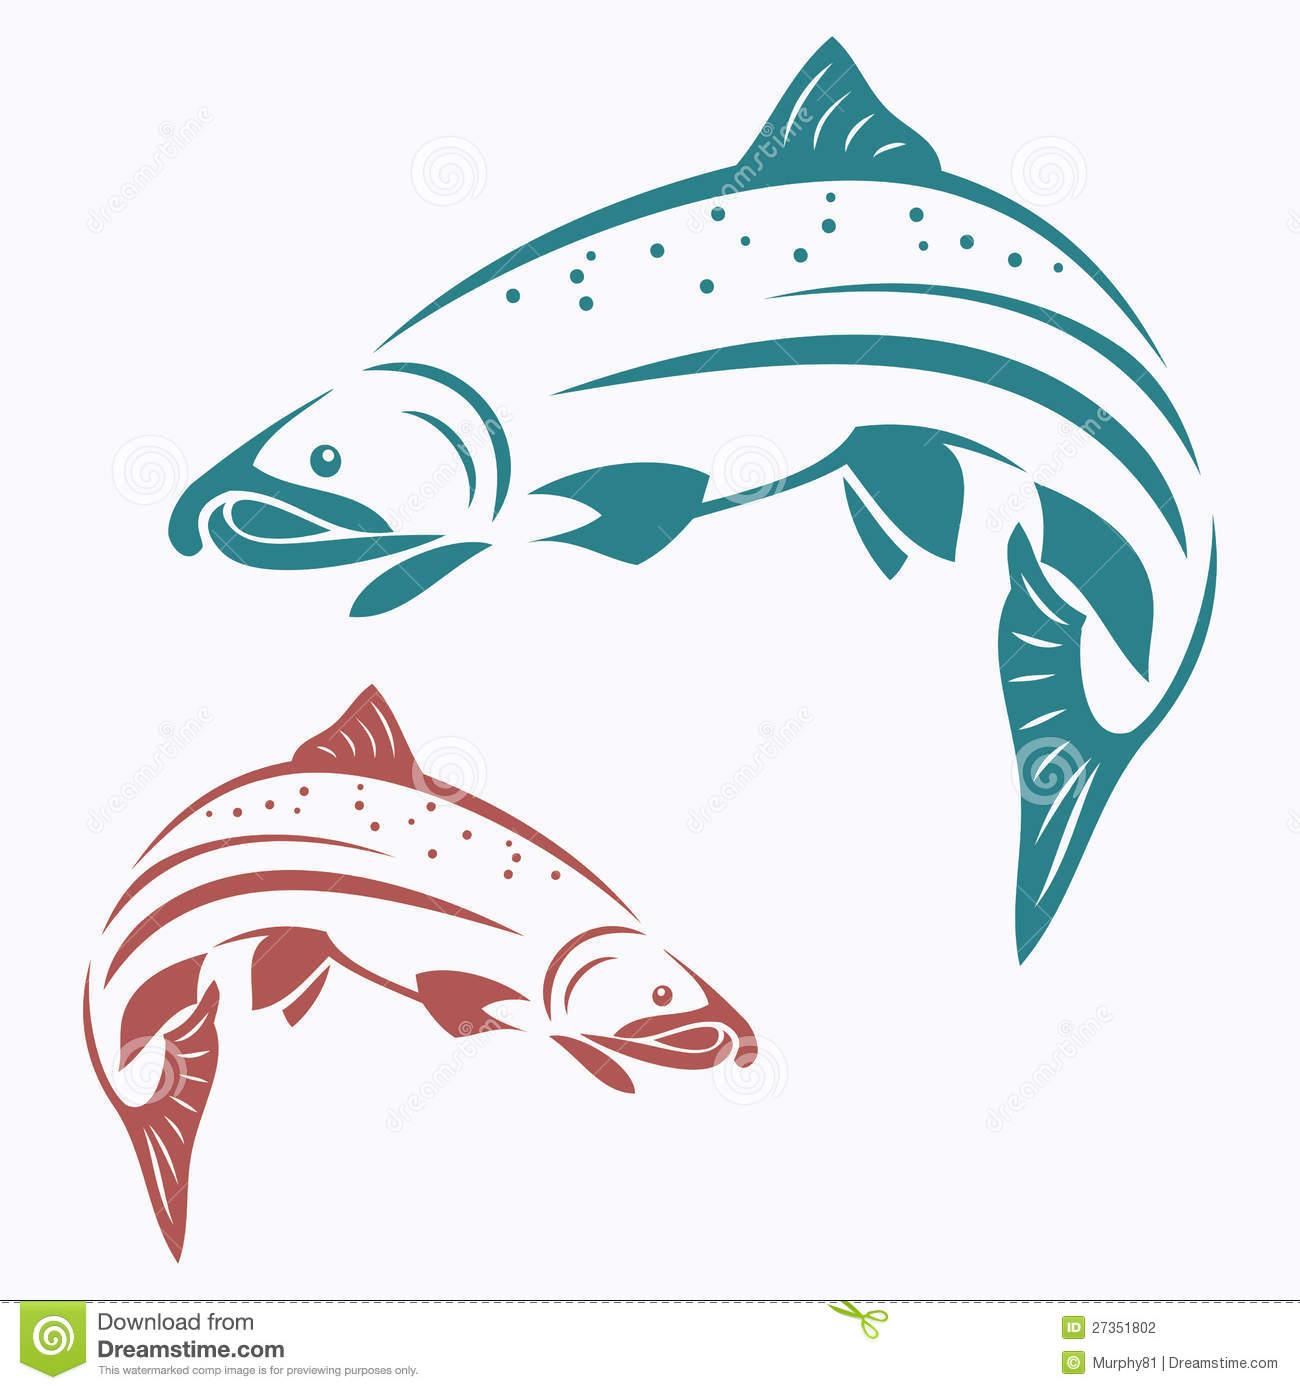 Sockey salmon clipart clipground for Fishing kings free